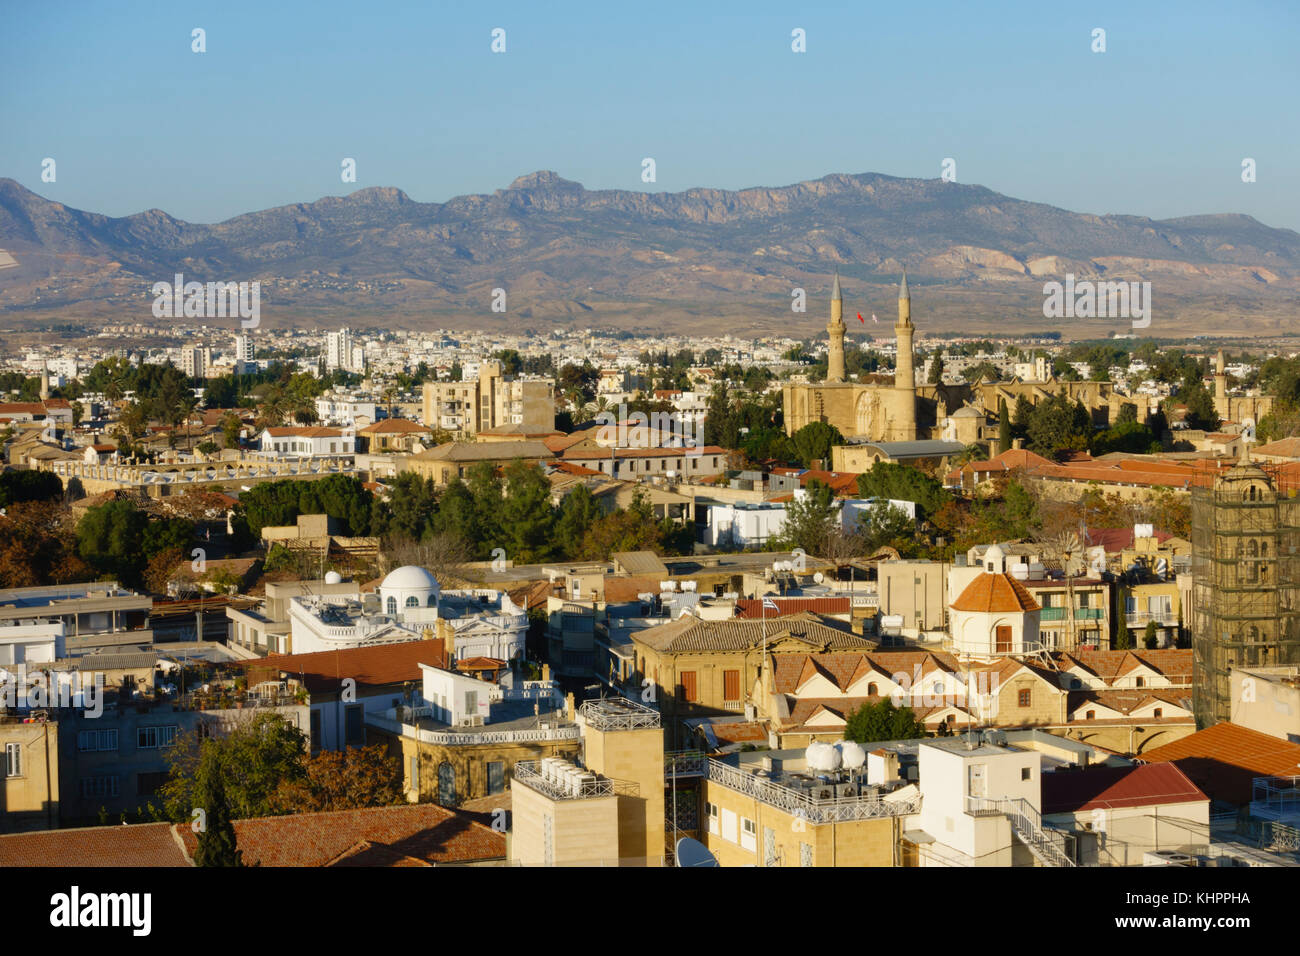 View over the Turkish North Nicosia, Lefkosia, Cyprus from the Shacolas building in the south. - Stock Image